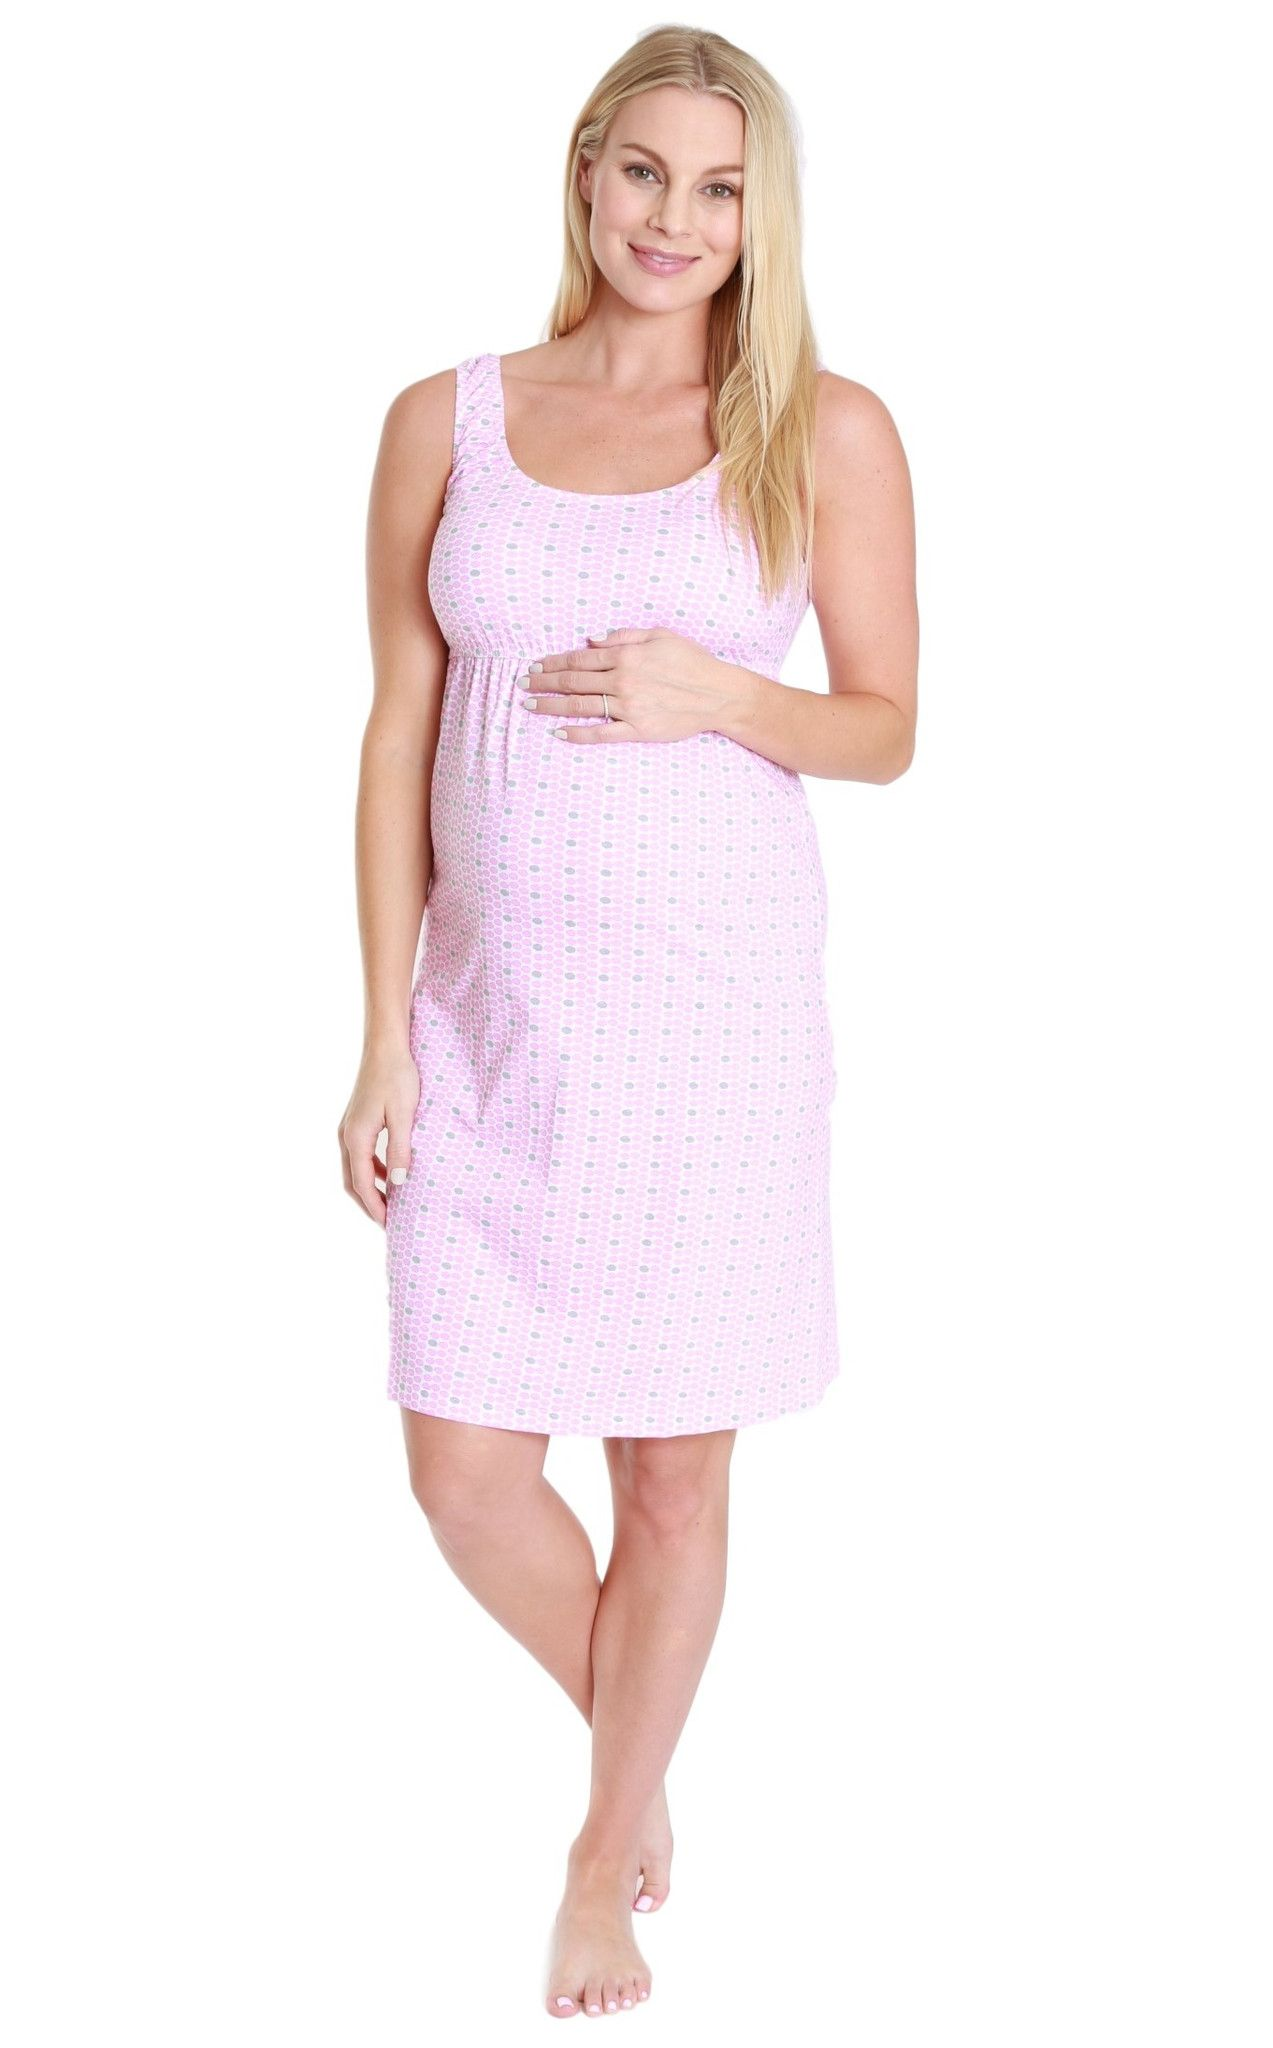 Chloe Maternity/Nursing Sleeveless Nightgown | What to wear during ...